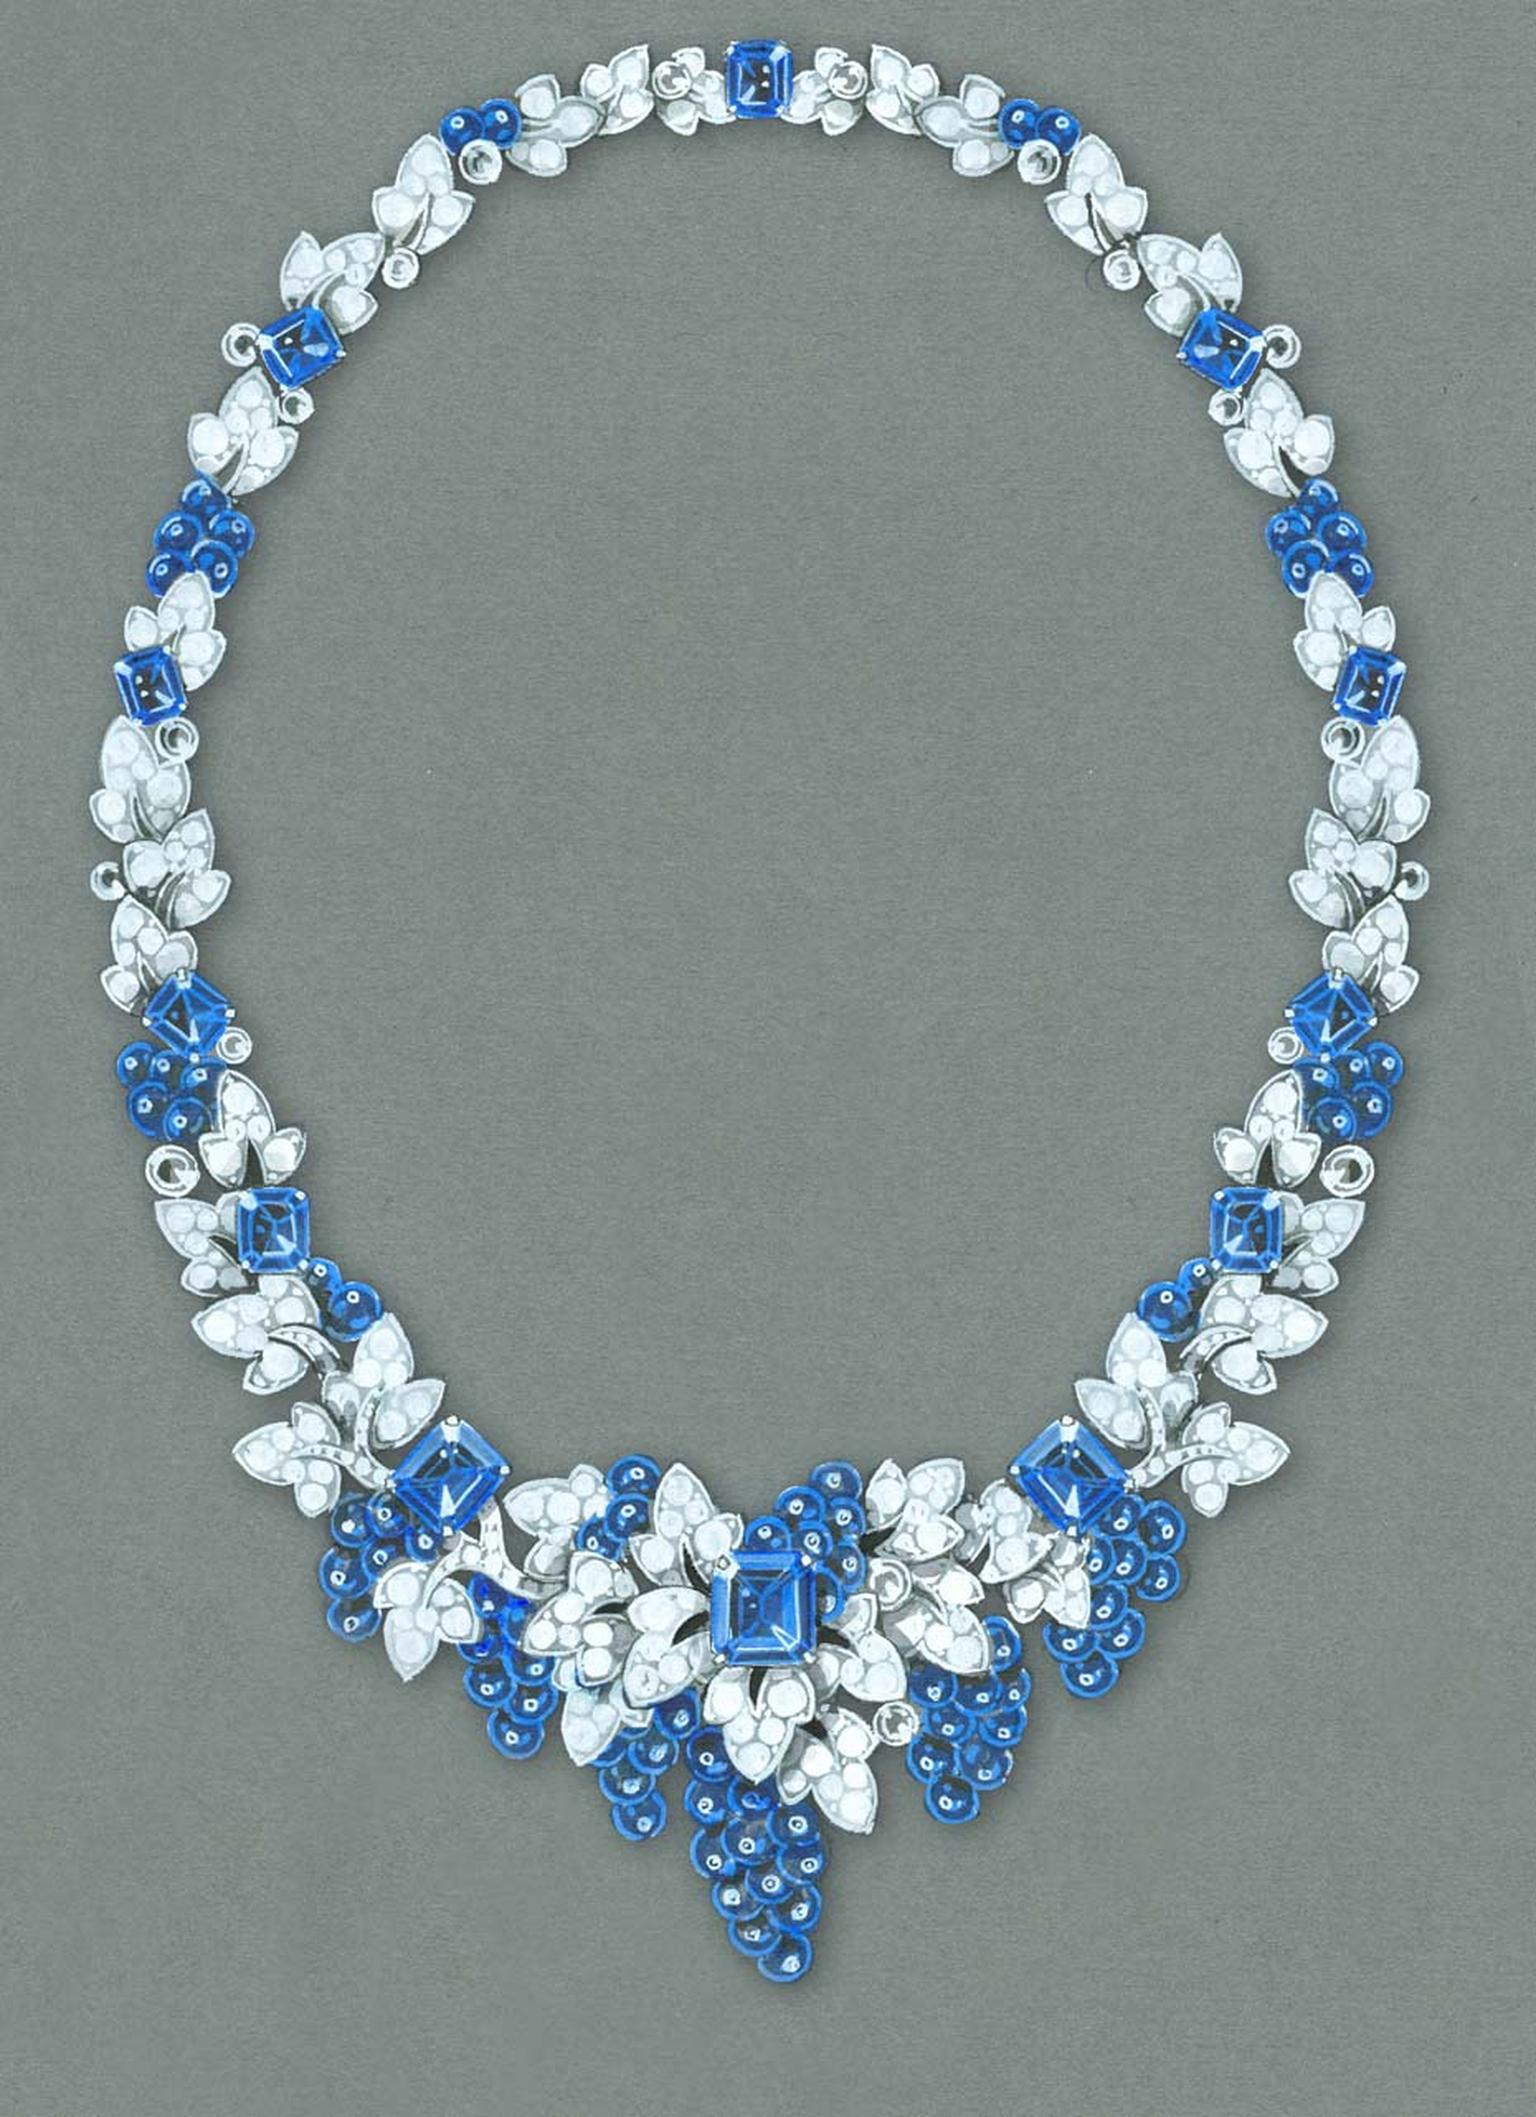 After a 12-year absence, Graff is returning to the Biennale in 2014 with a collection of one-off jewels, including this nature-inspired sapphire and diamond necklace, created especially for the occasion.